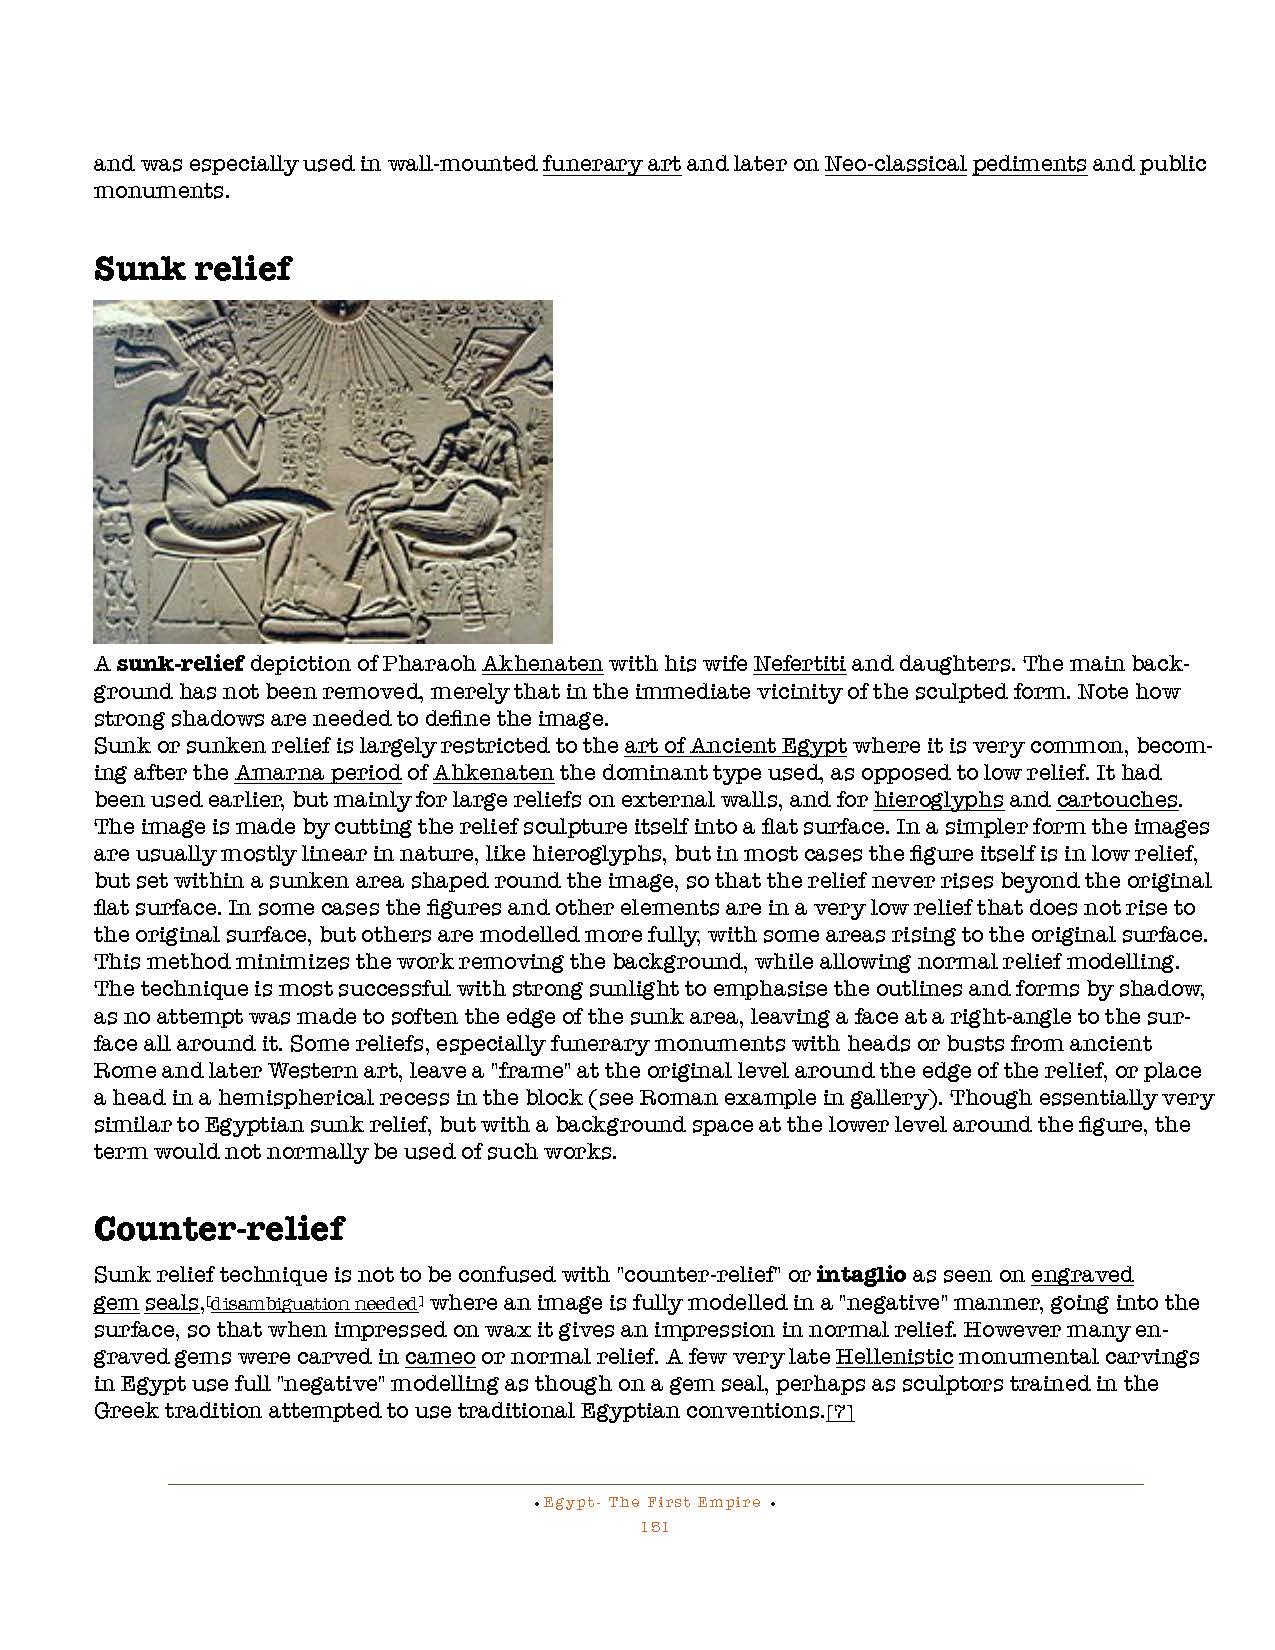 HOCE- Egypt  (First Empire) Notes_Page_151.jpg